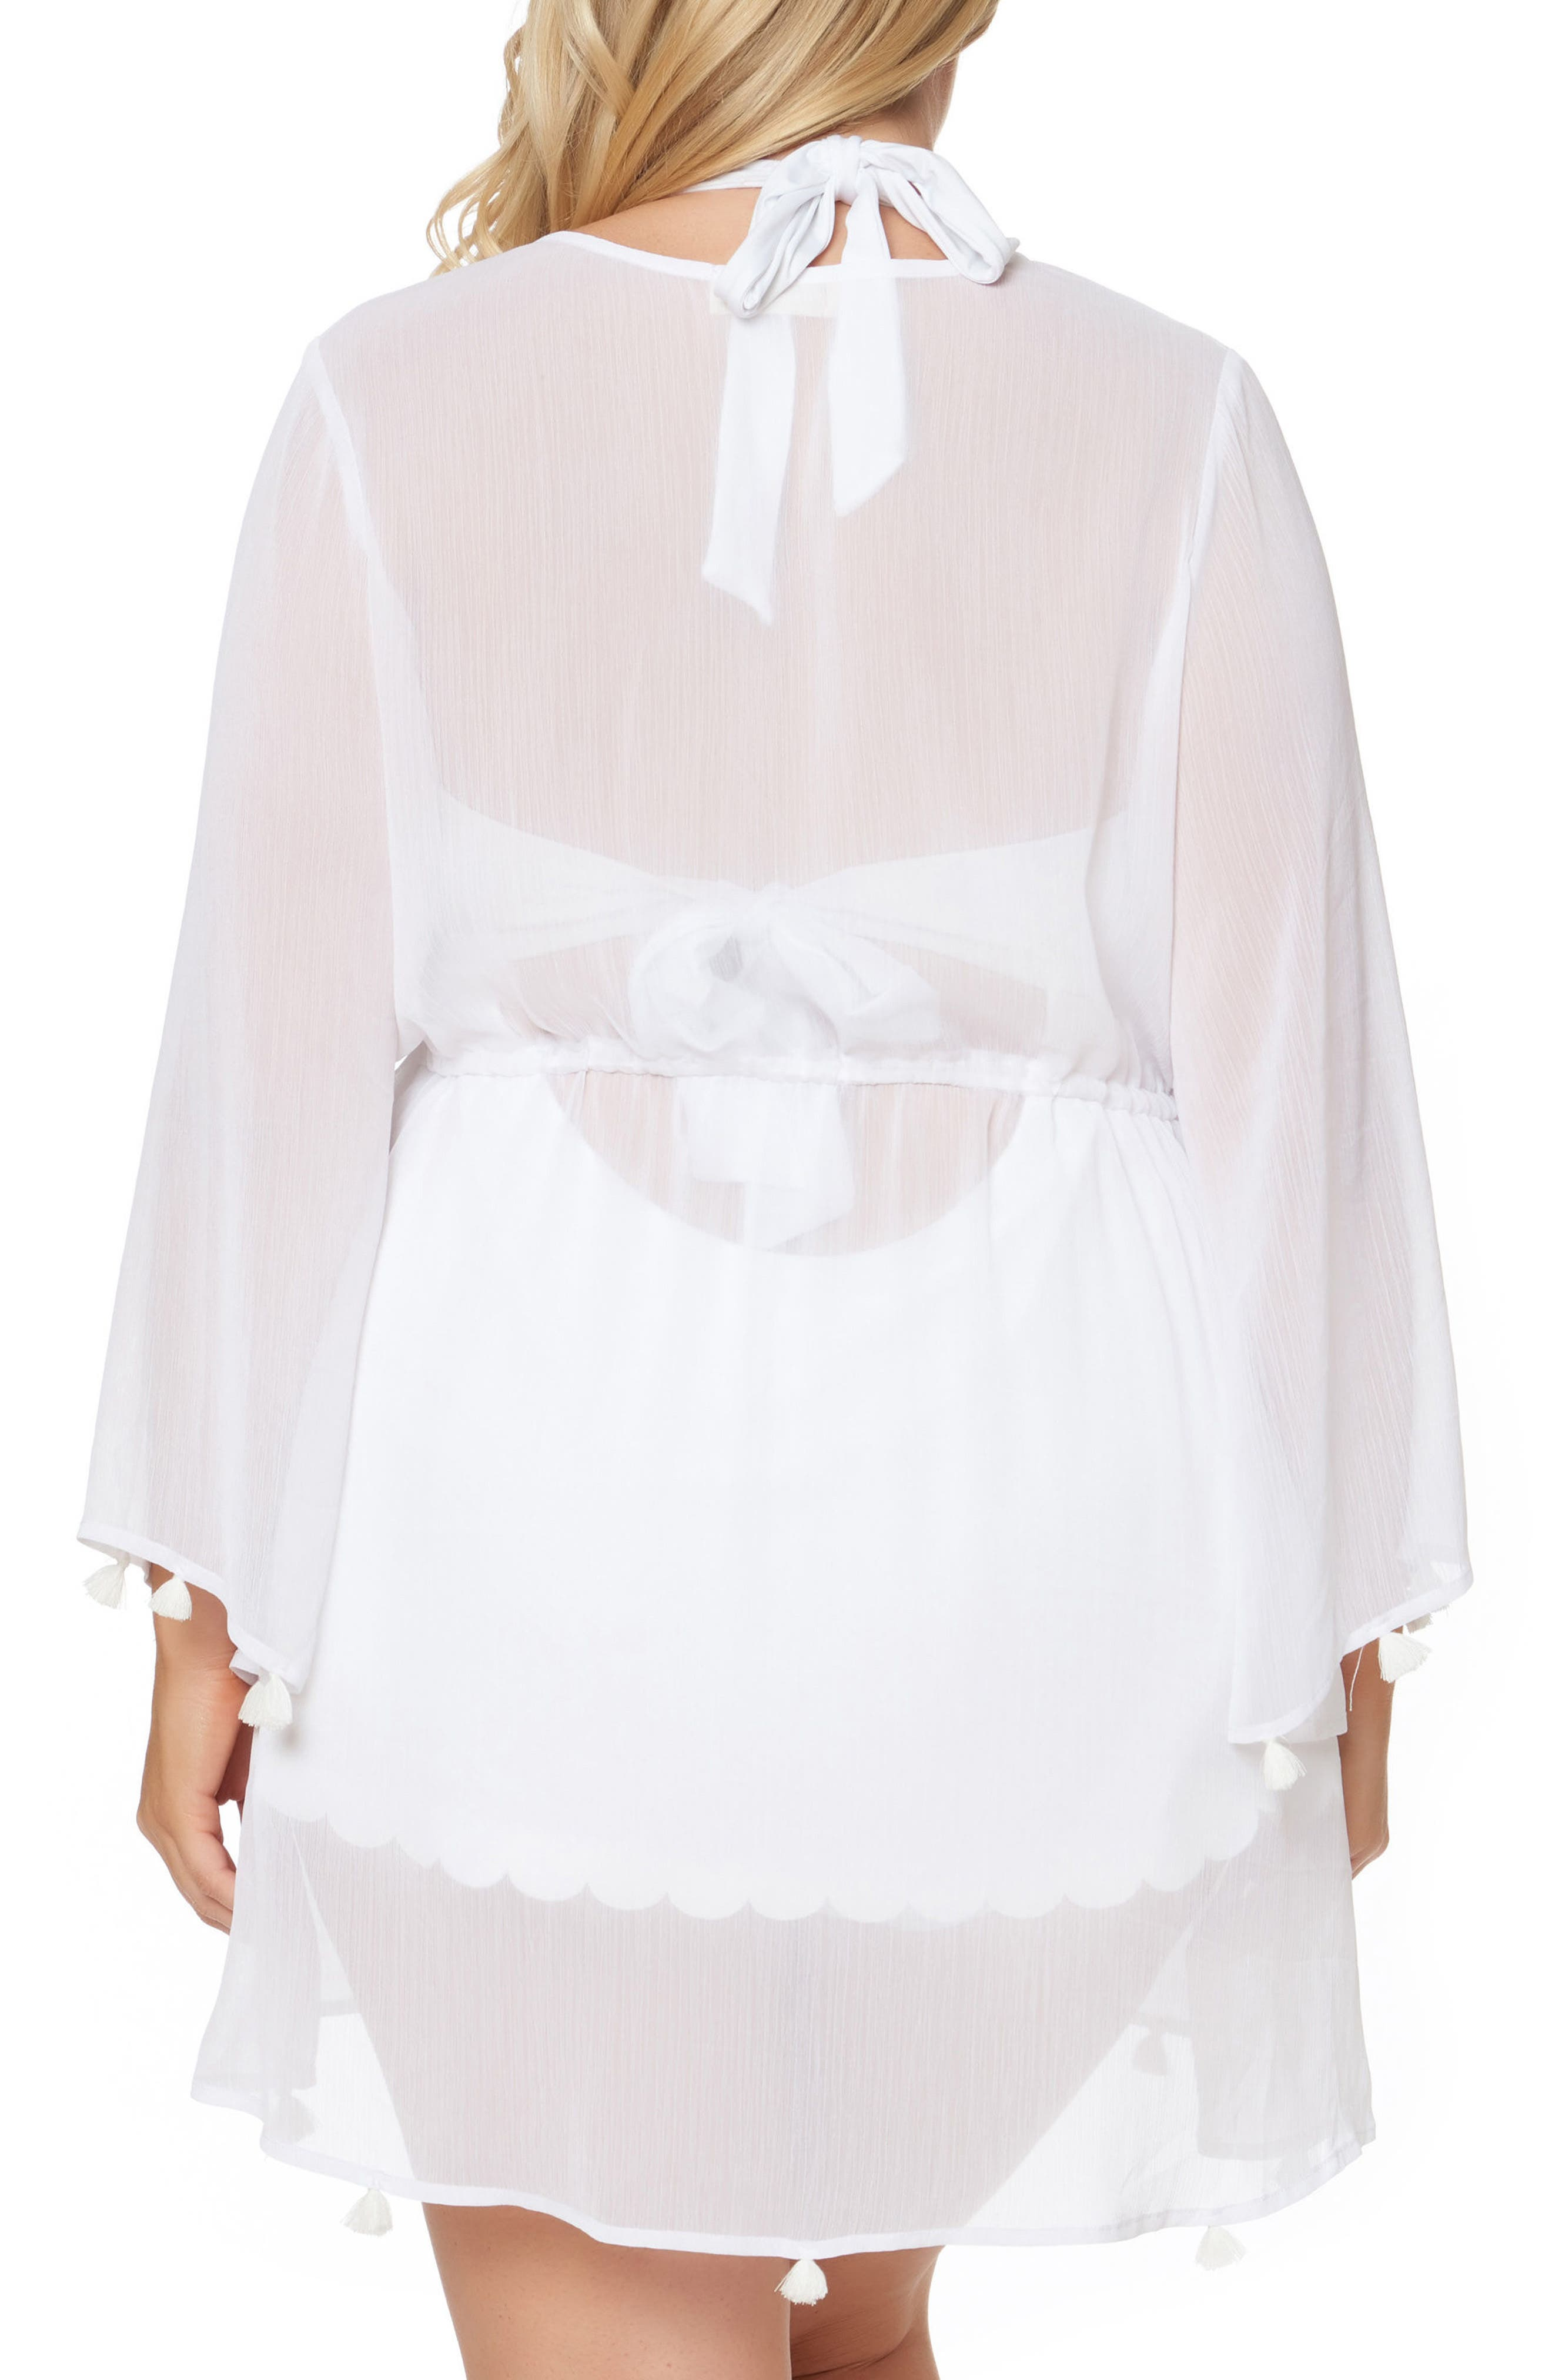 Chiffon Cover-Up Kimono,                             Alternate thumbnail 2, color,                             White